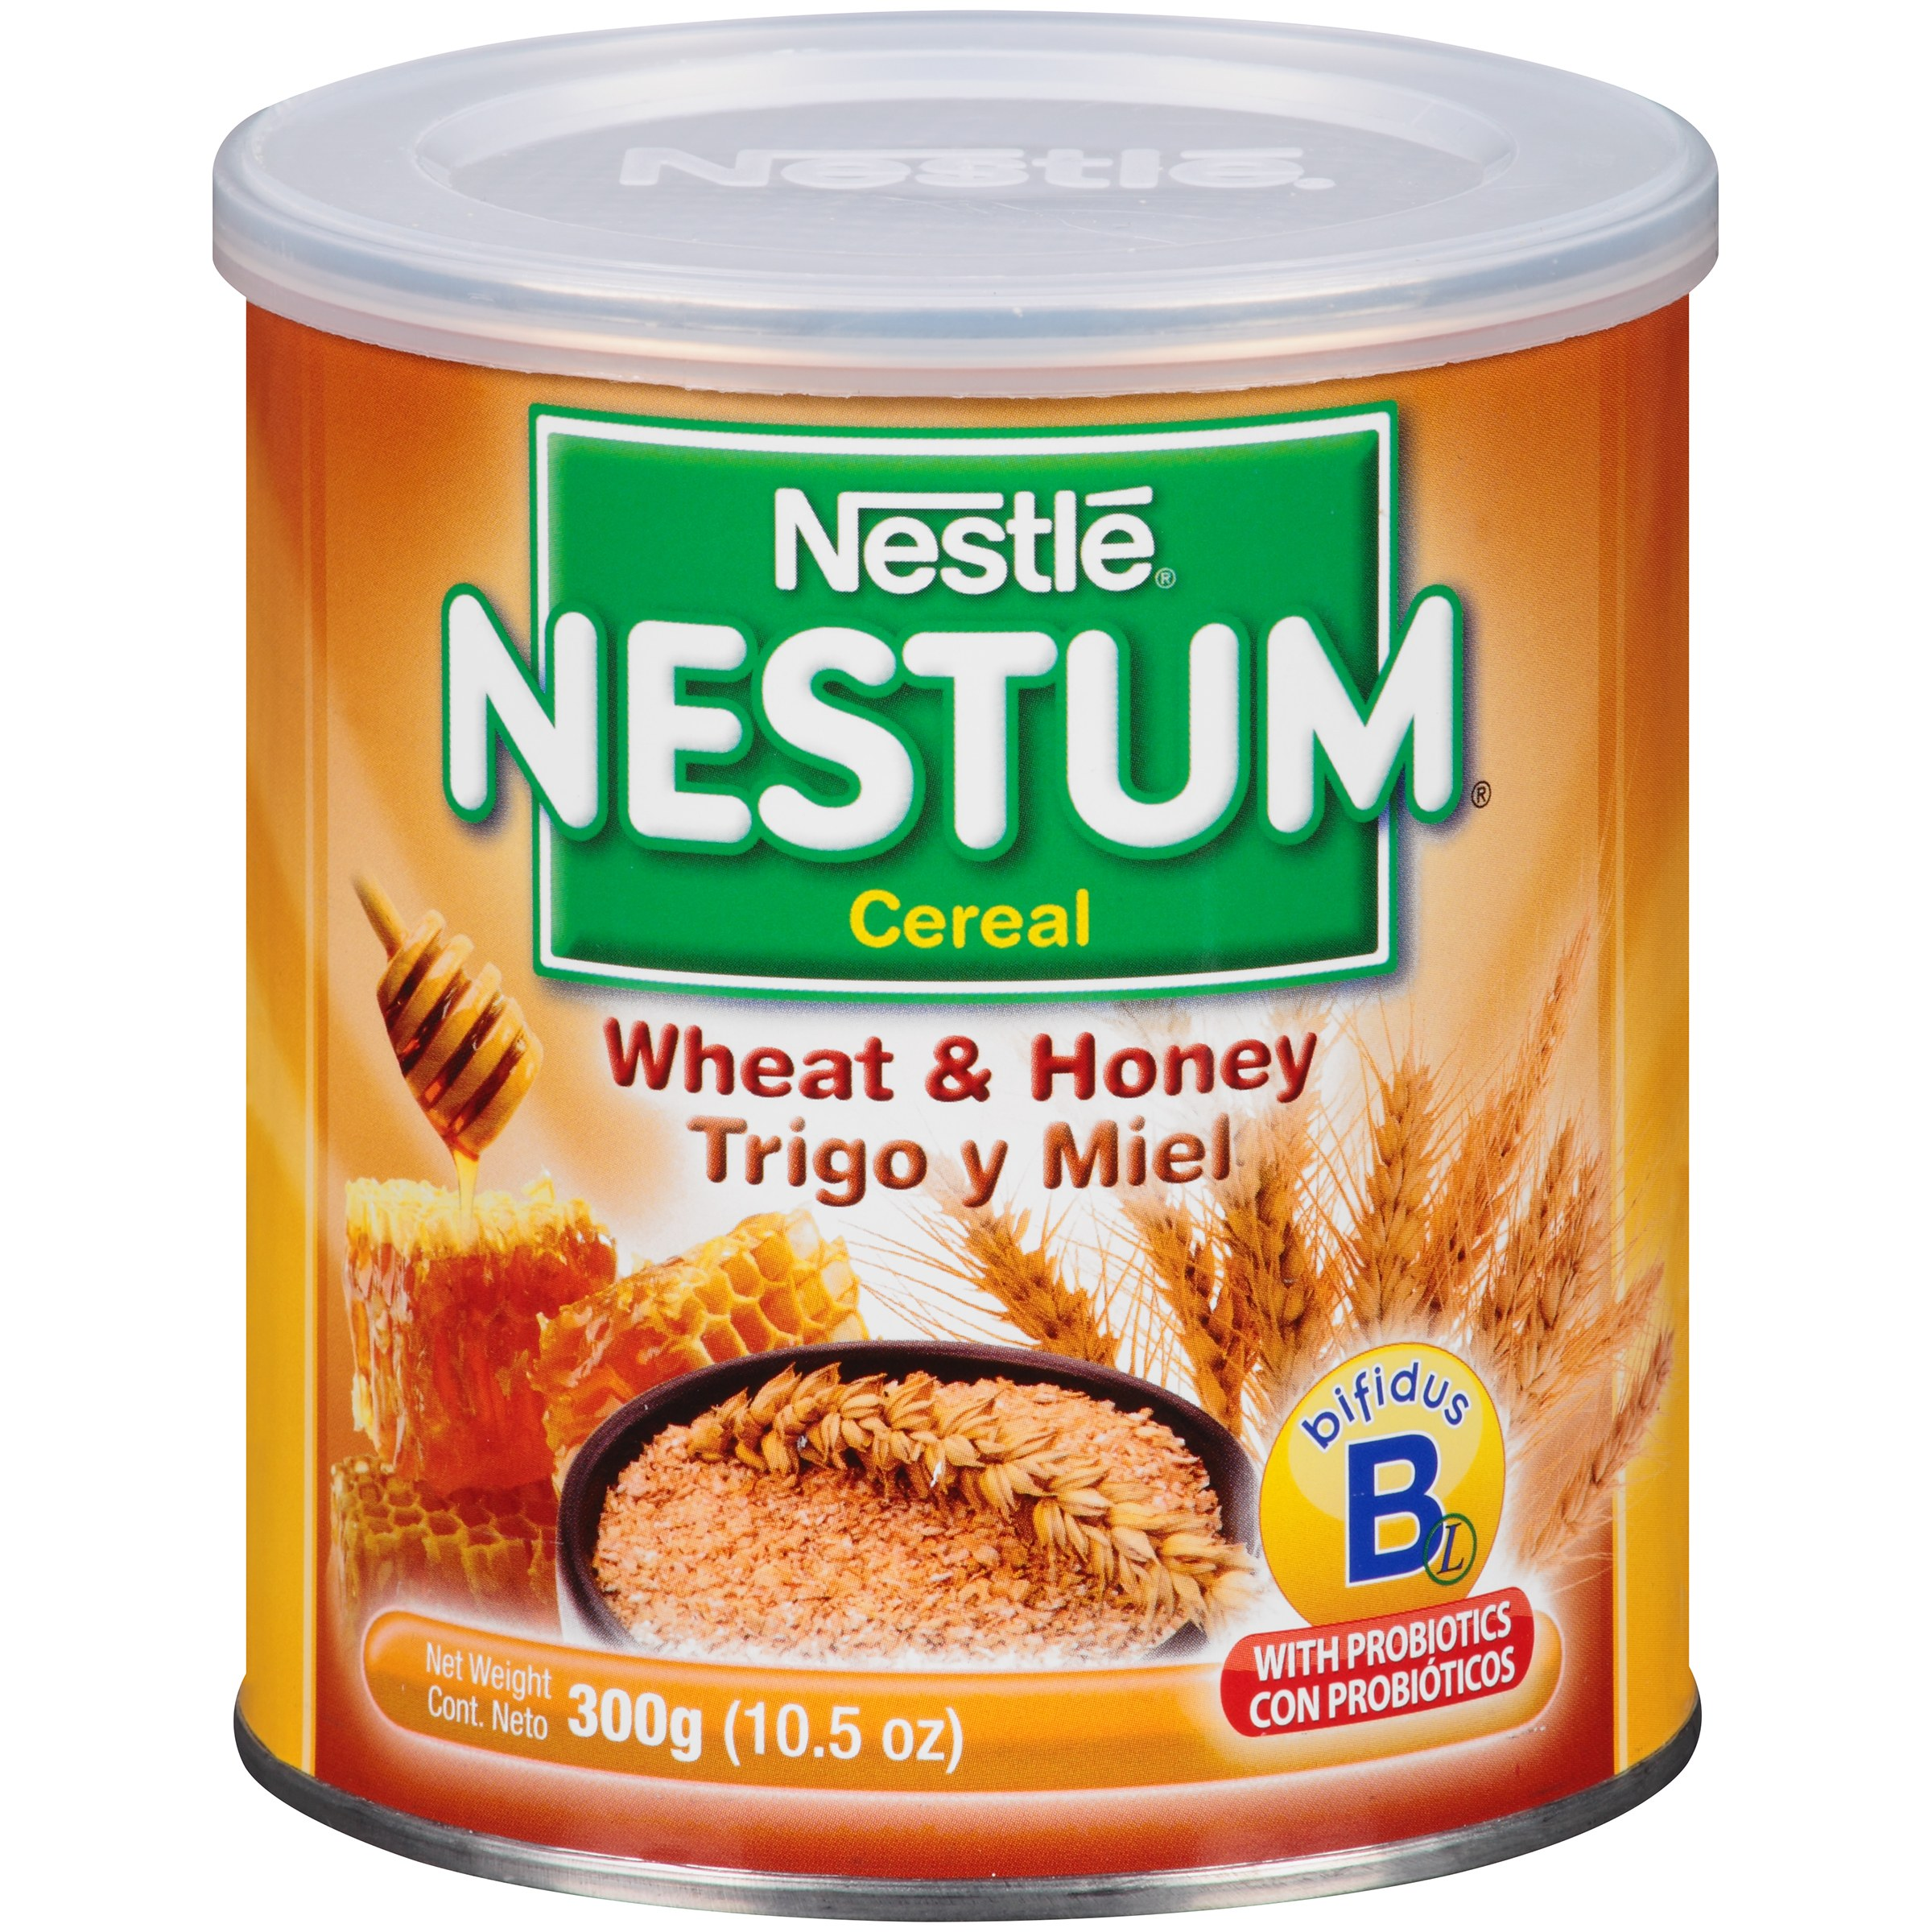 Nestle Nestum Breakfast Cereal, Wheat & Honey, 10.5 Oz